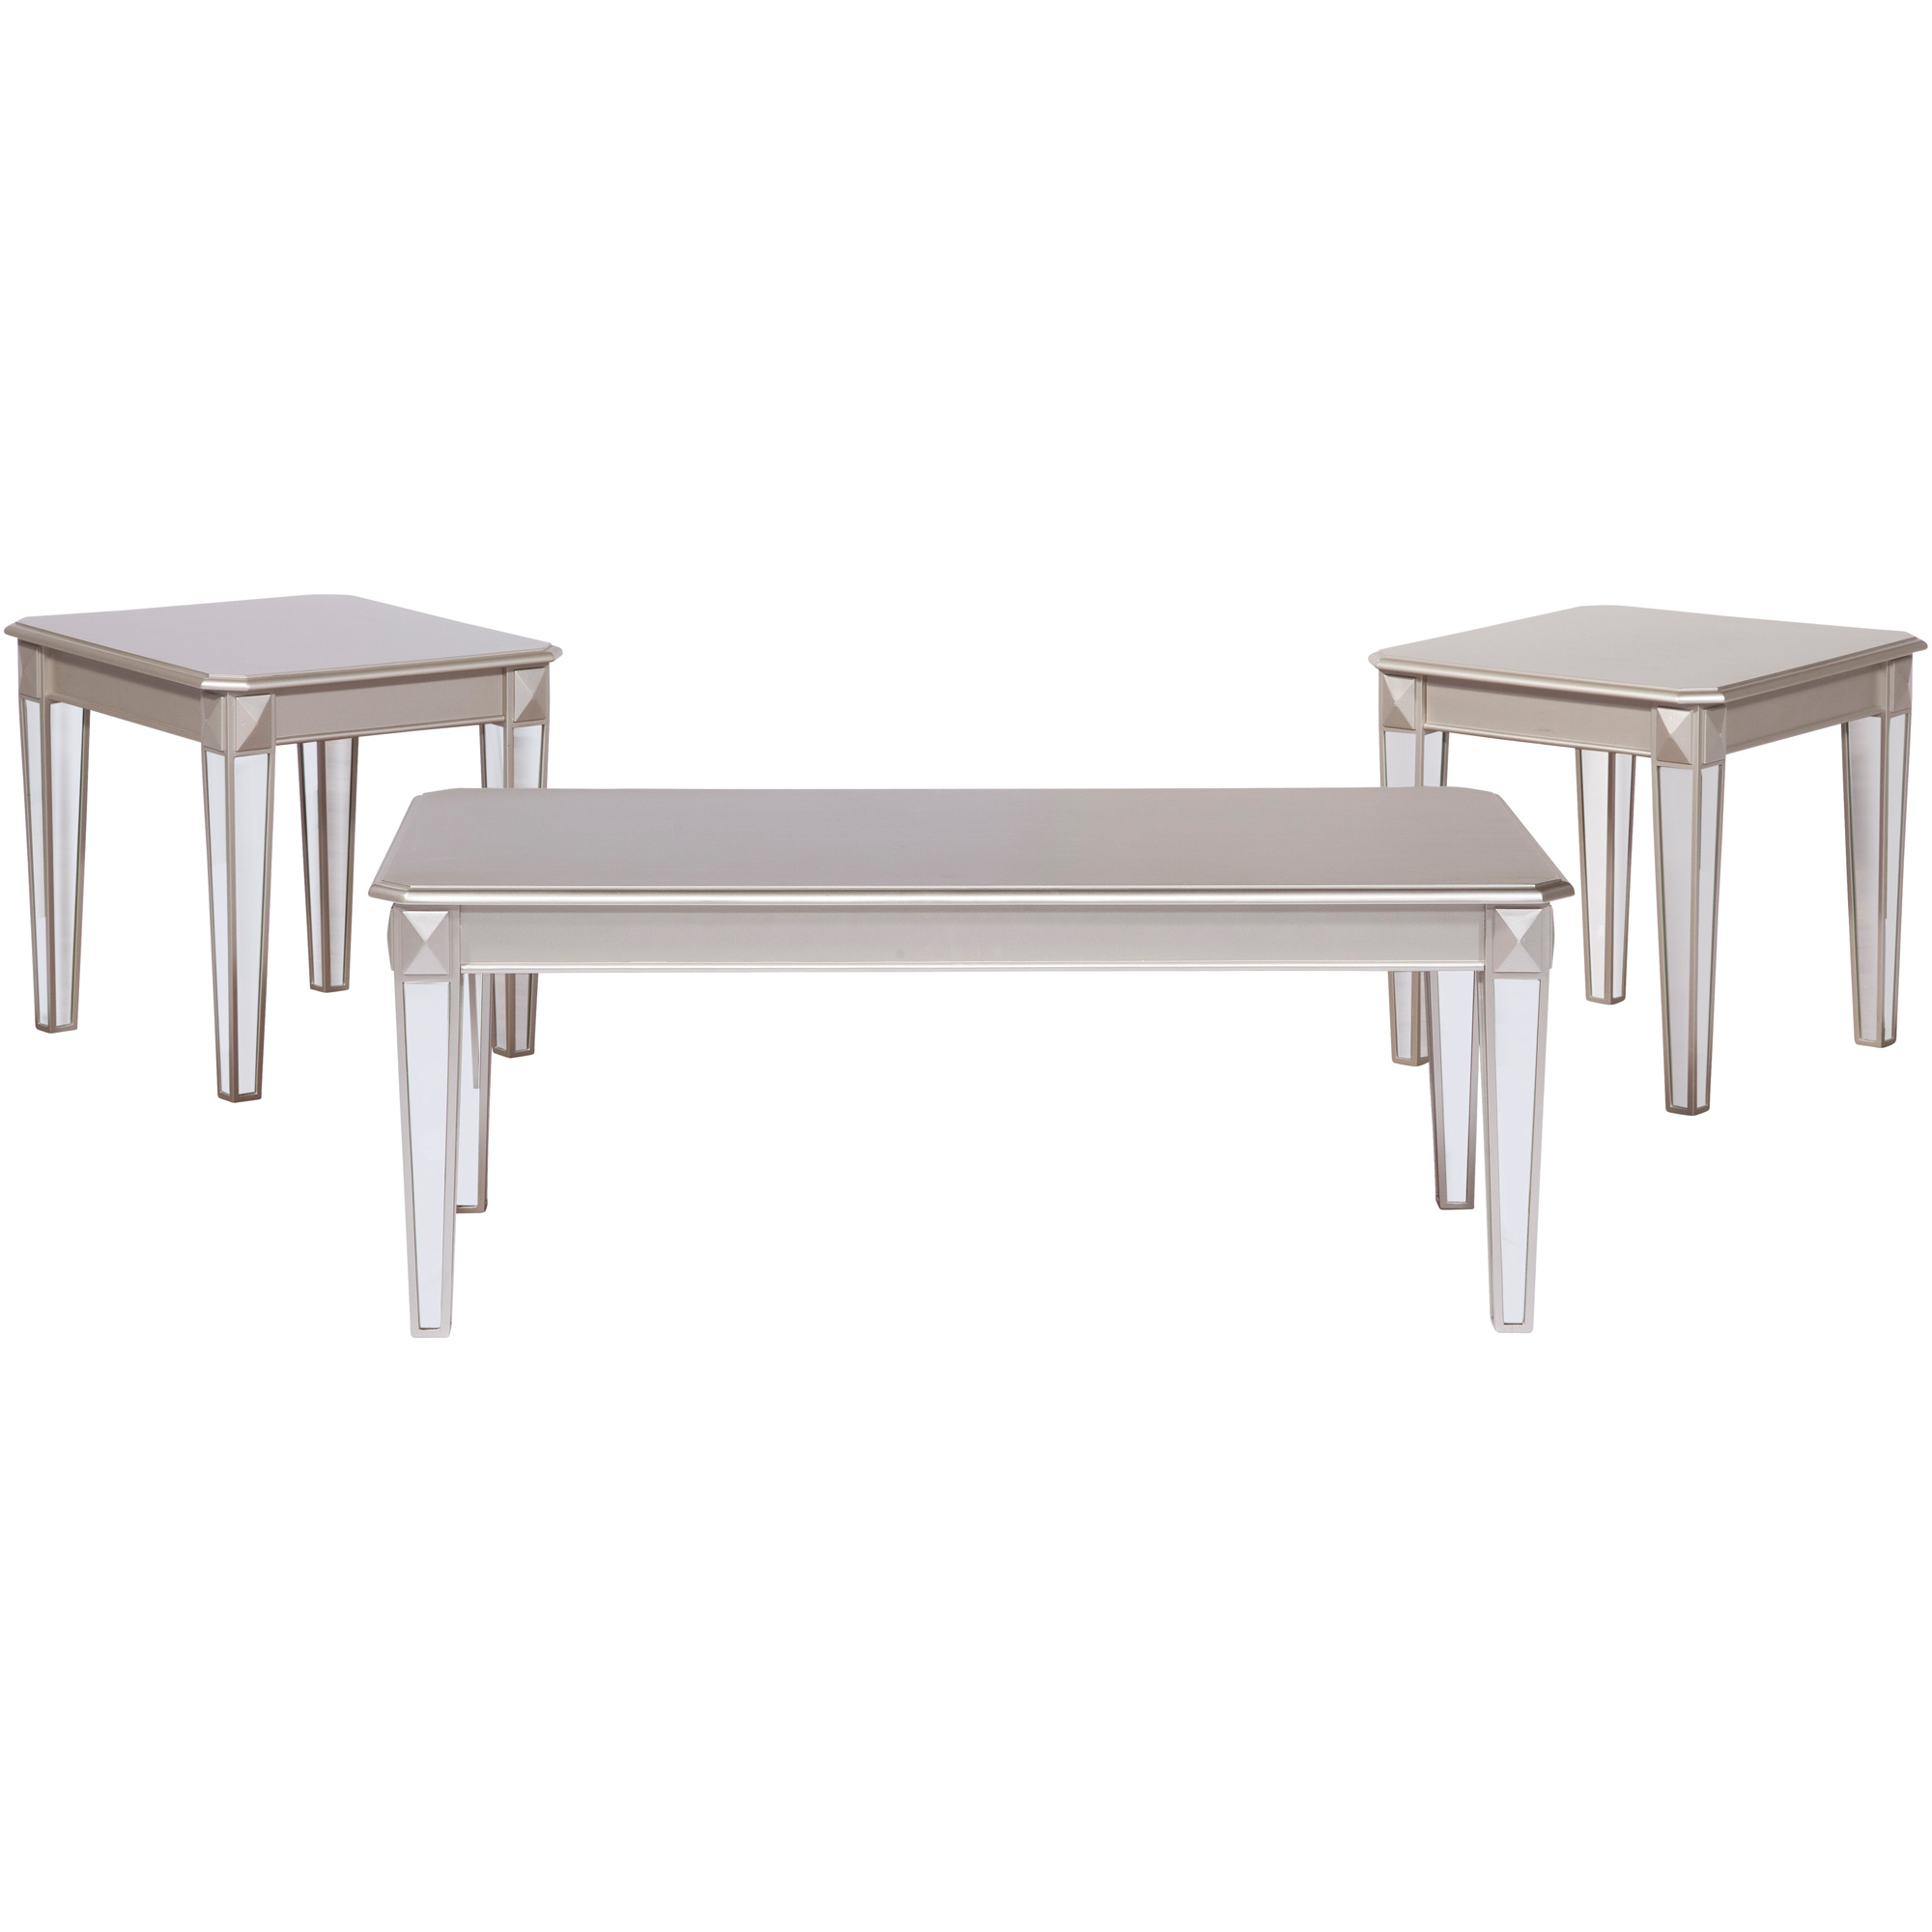 Serta Upholstery By Hughes Furniture | Alofast Champagne Set of 3 Tables